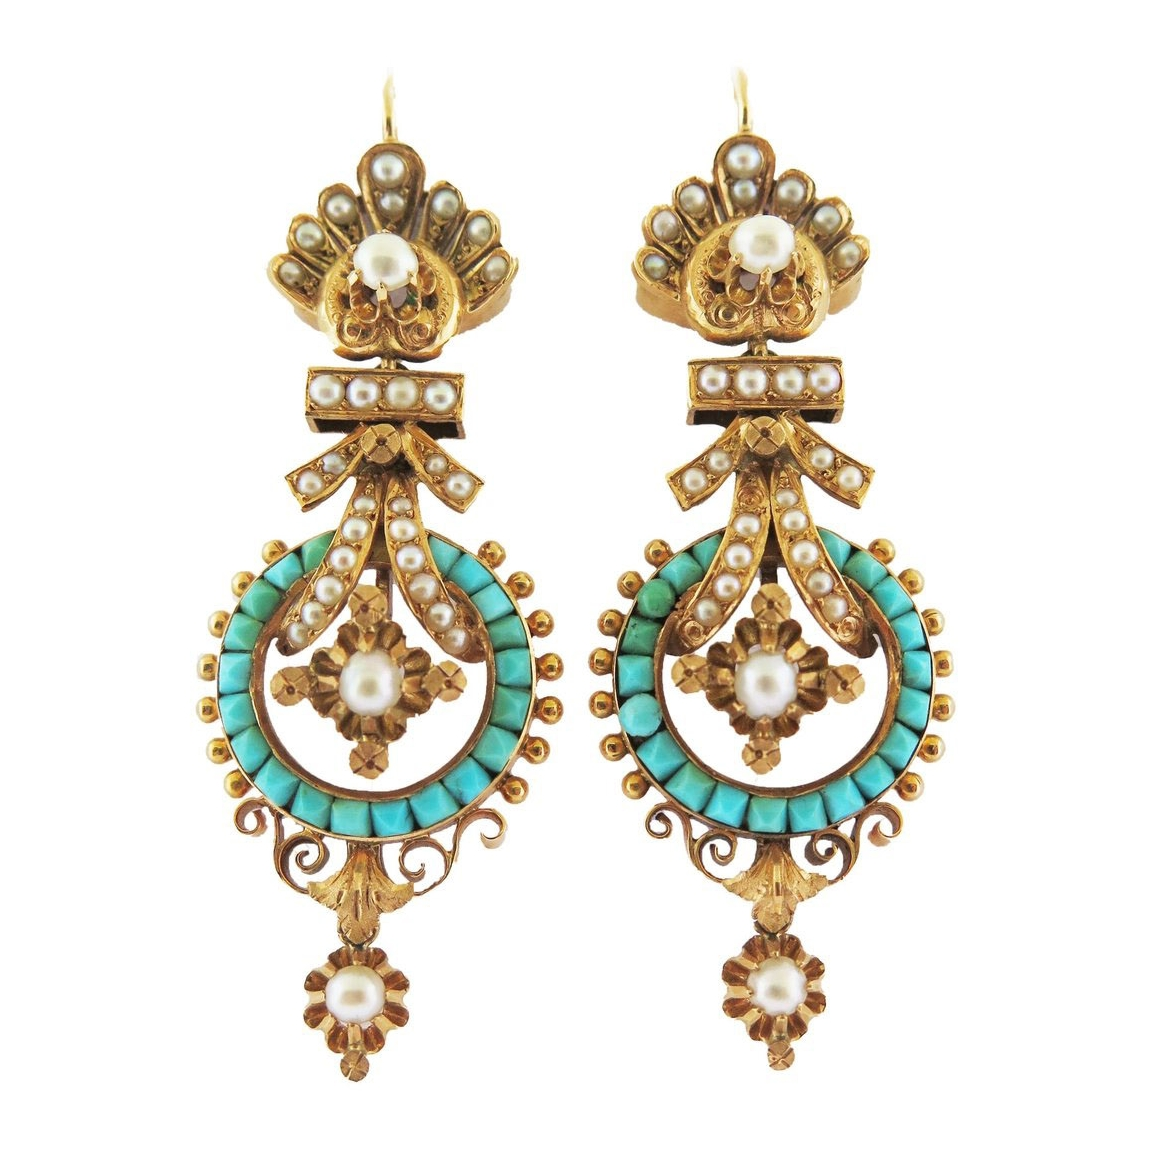 Antique Turquoise and Pearl Gold Earrings